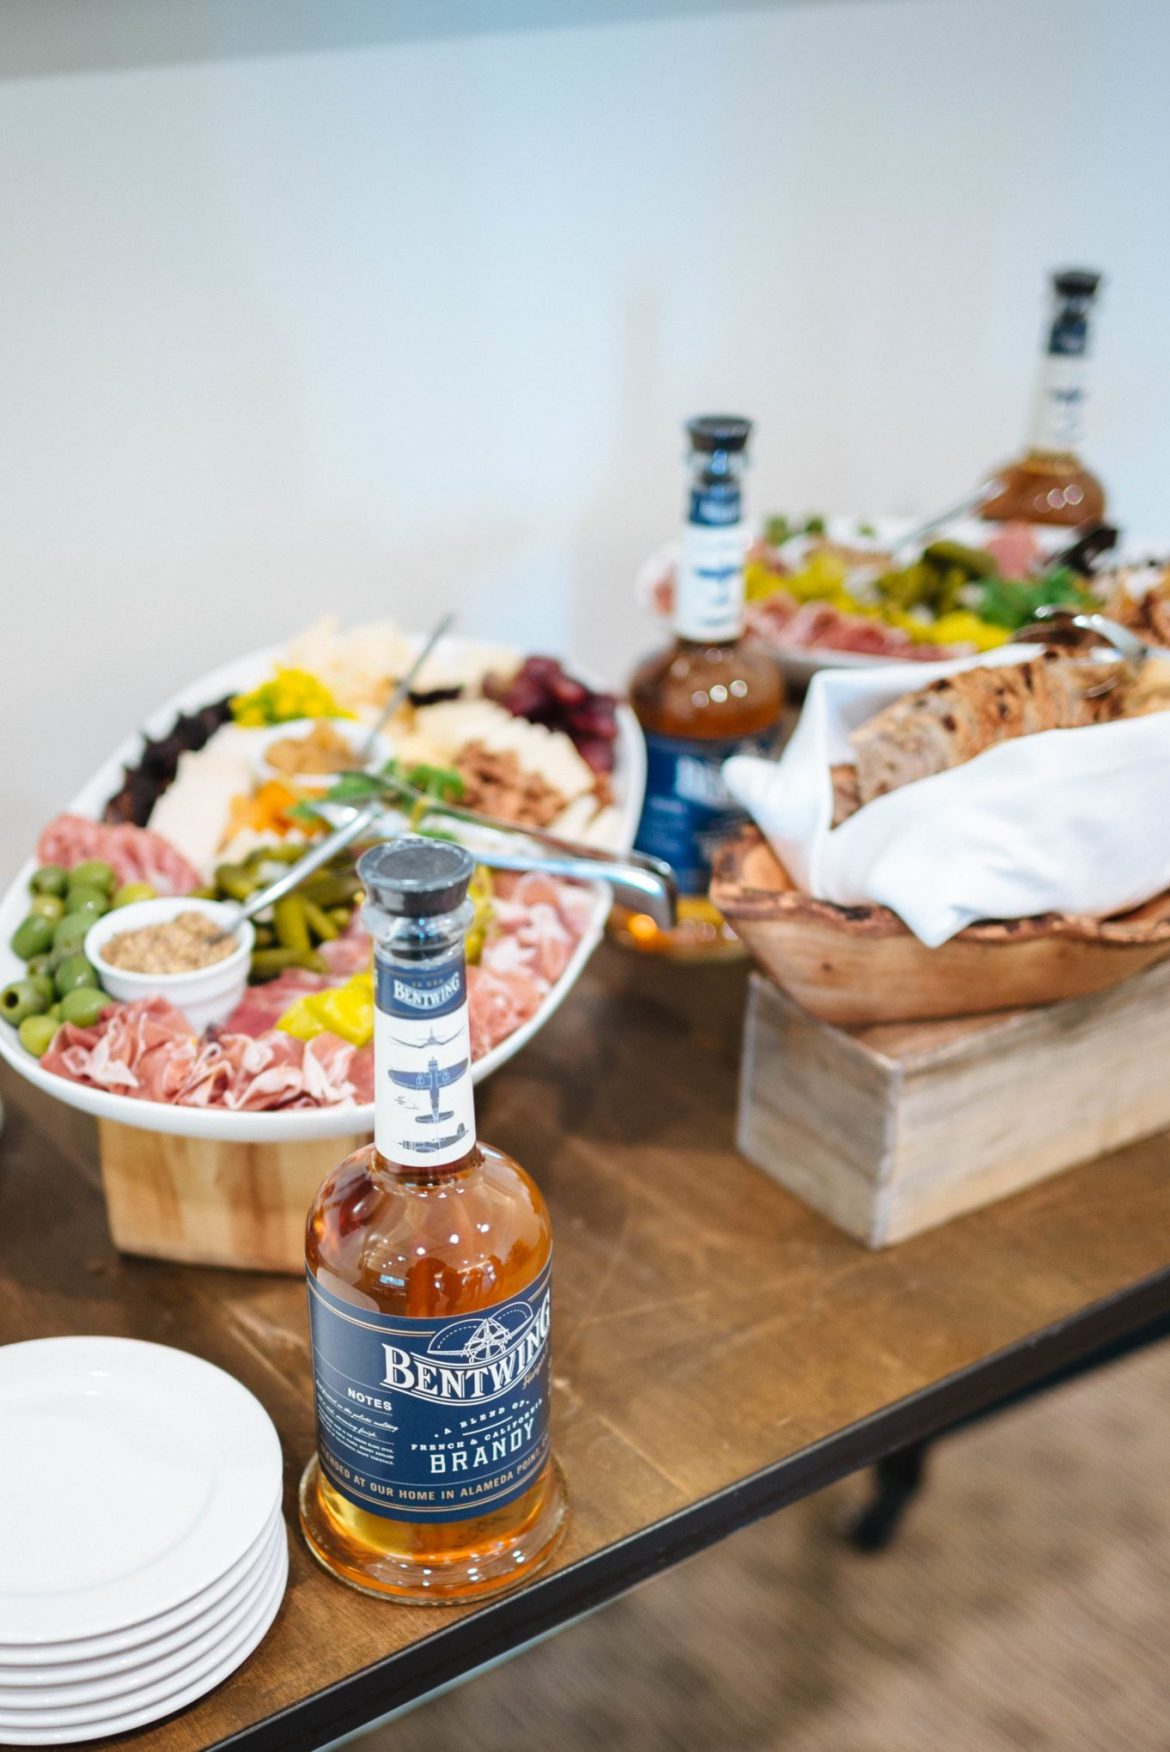 The Taste Edit attends the Hangar 1 Distillery launch party for Bentwing Brandy in Napa Valley at Meadowood appetizers